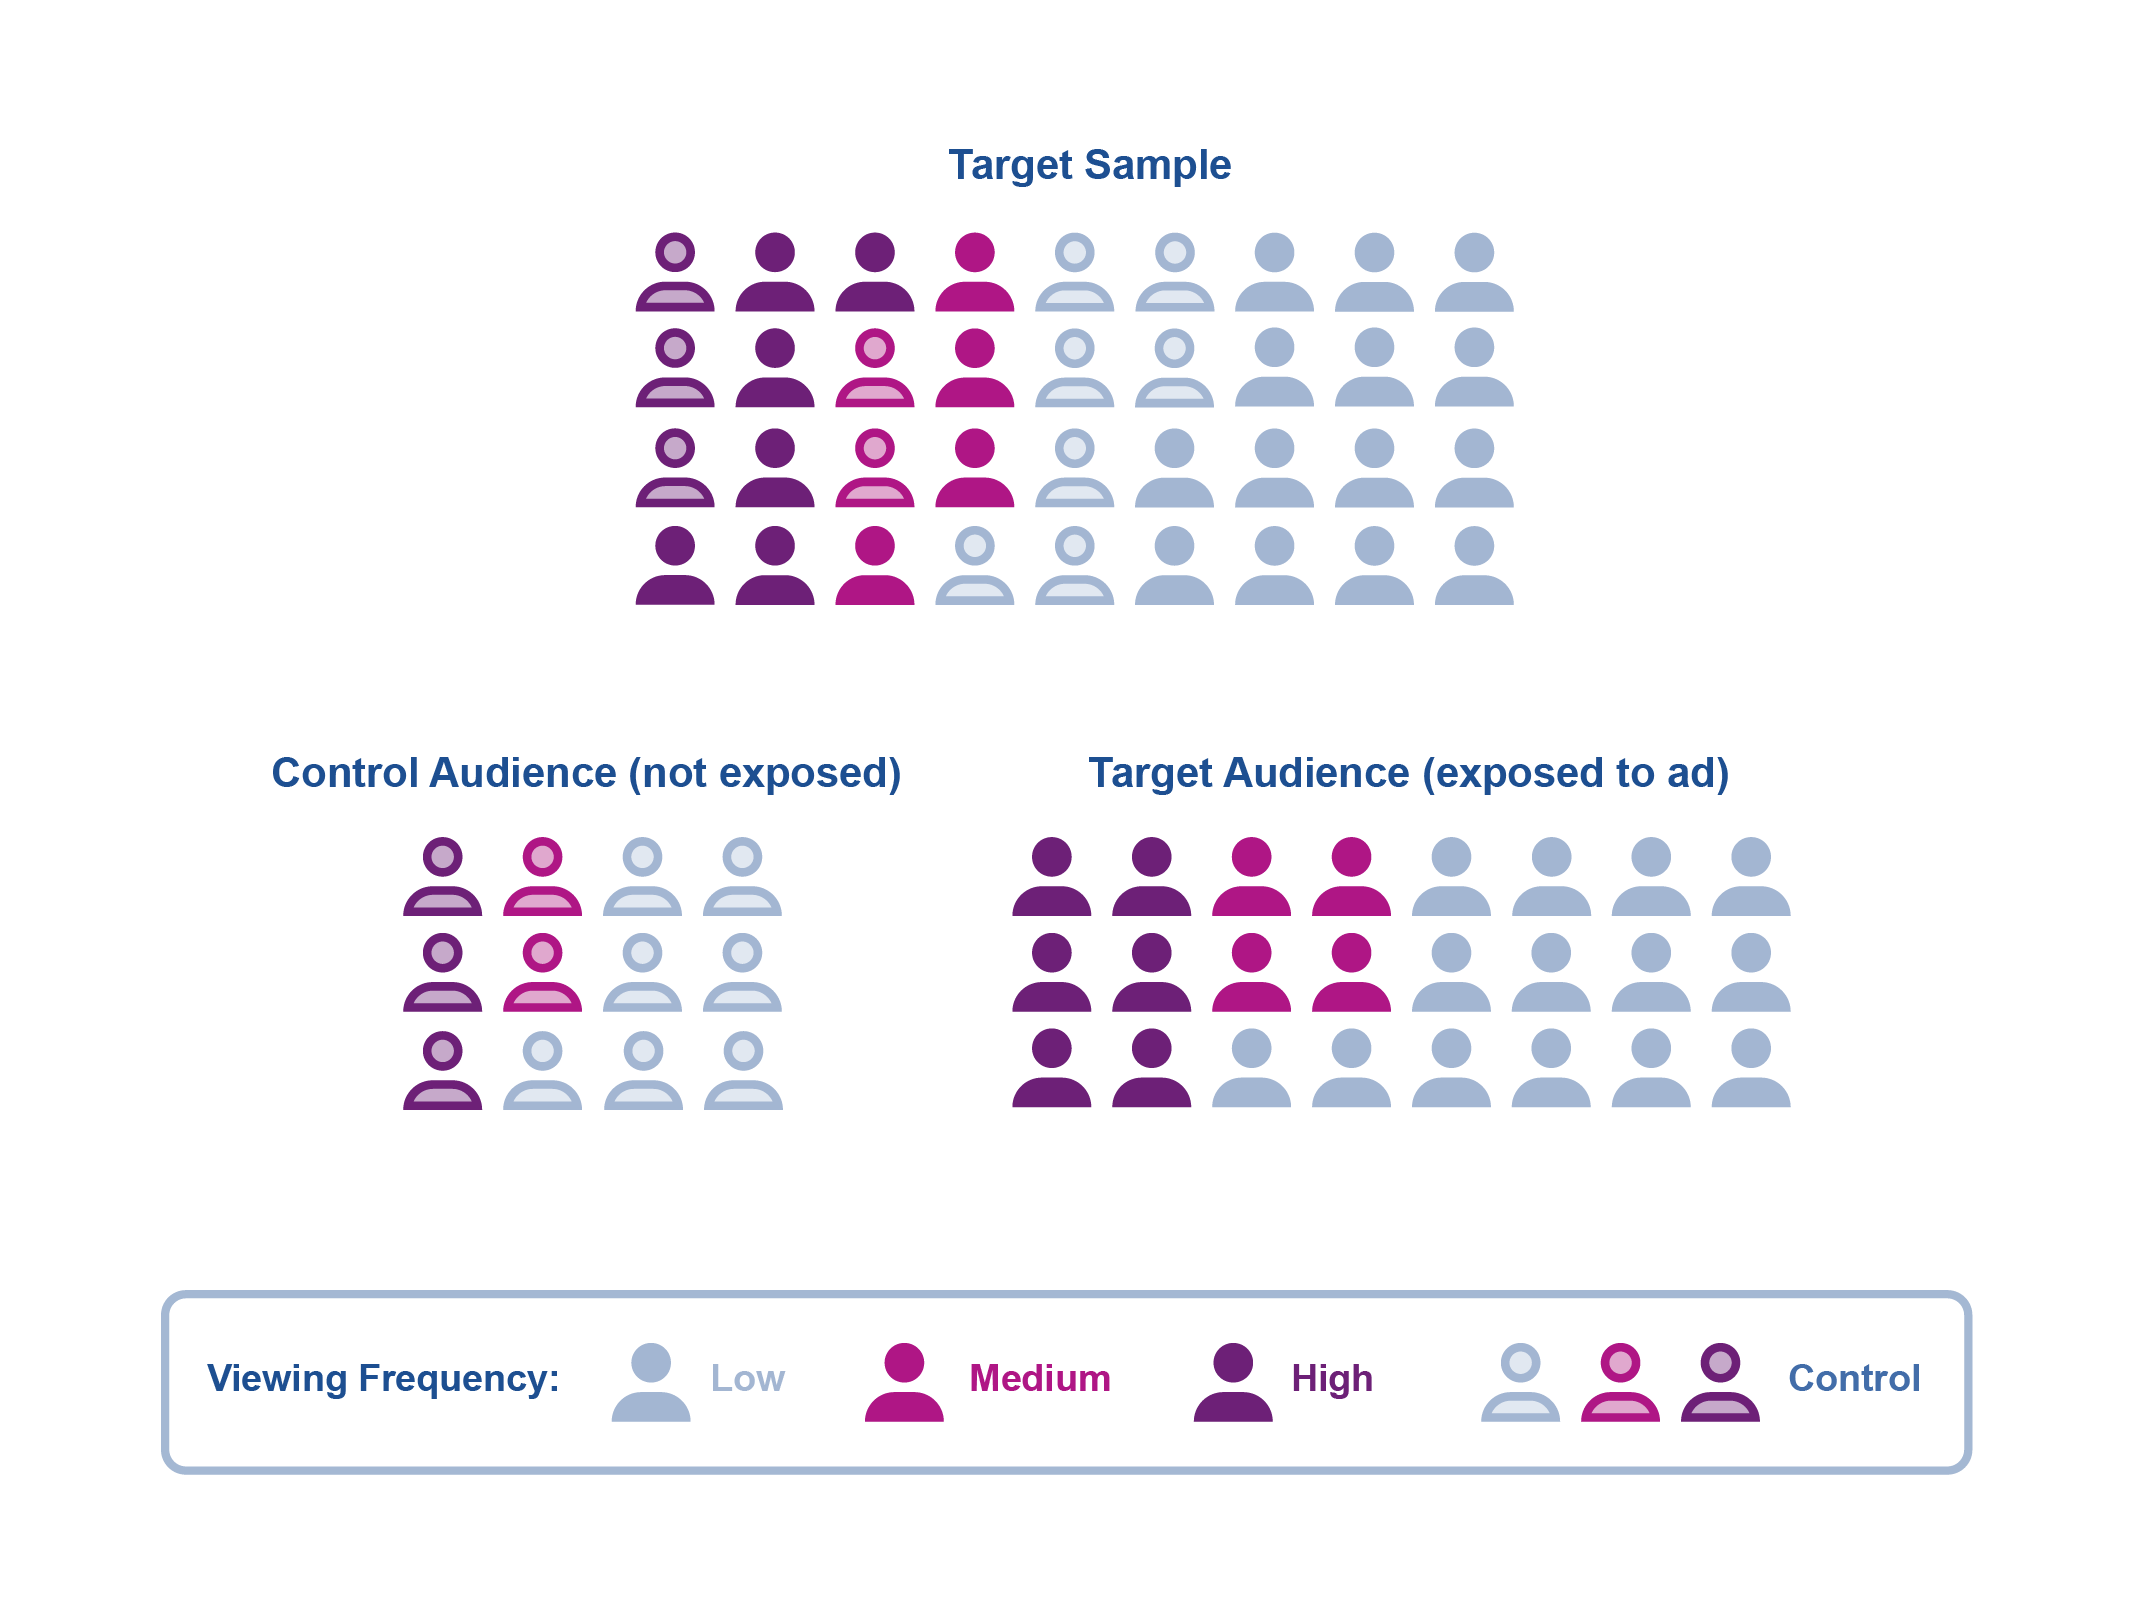 Ad testing measurement example-visual of sample population splitting into test target audience vs control